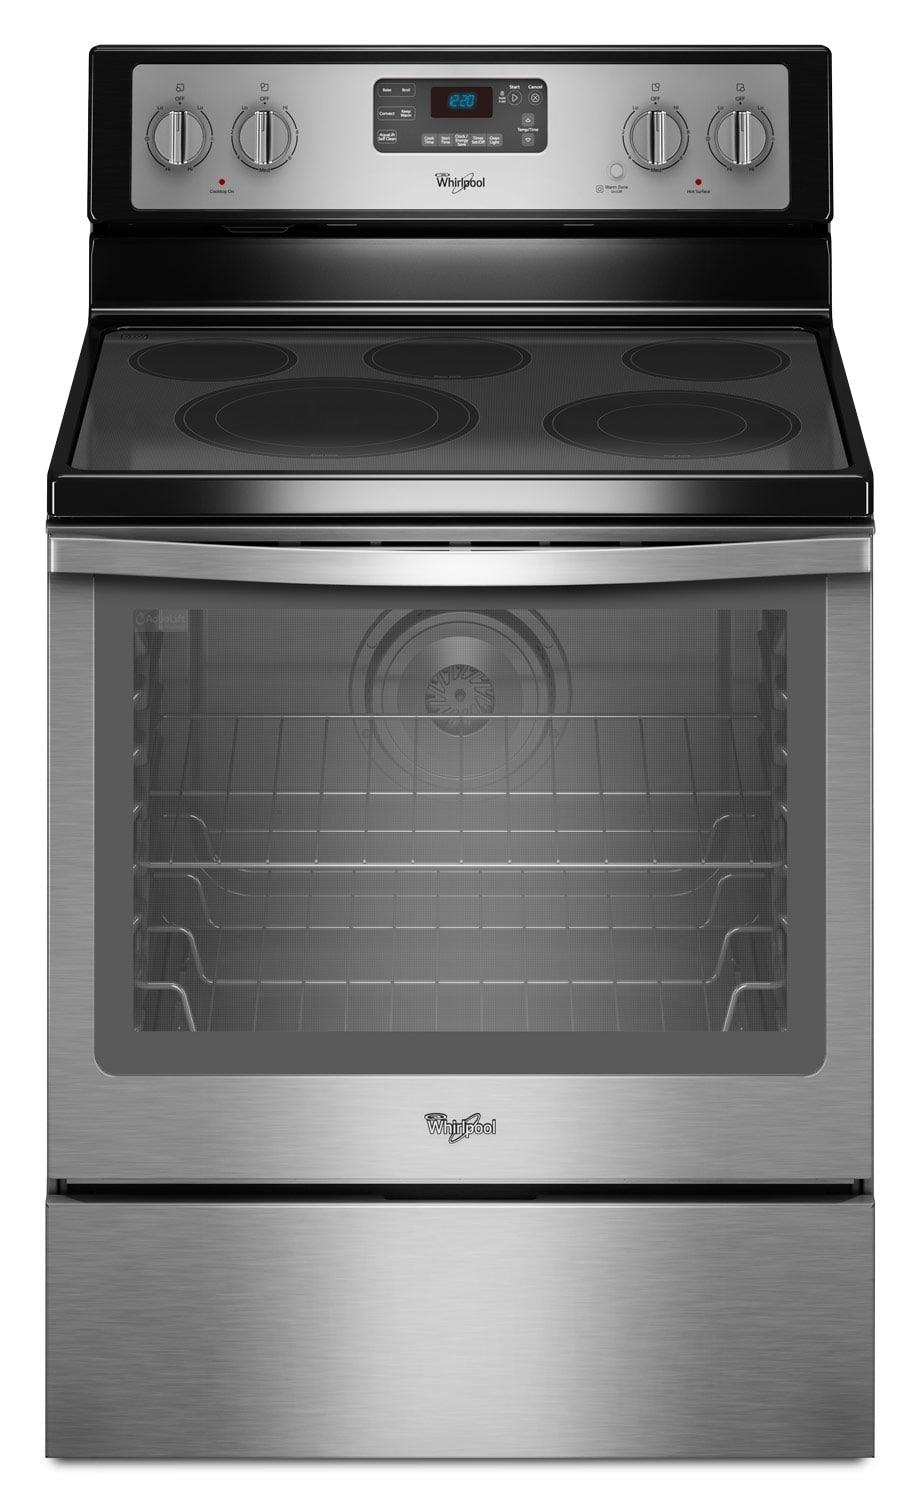 Cooking Products - Whirlpool Stainless Steel Freestanding Electric Convection Range (6.4 Cu. Ft.) - YWFE540H0ES